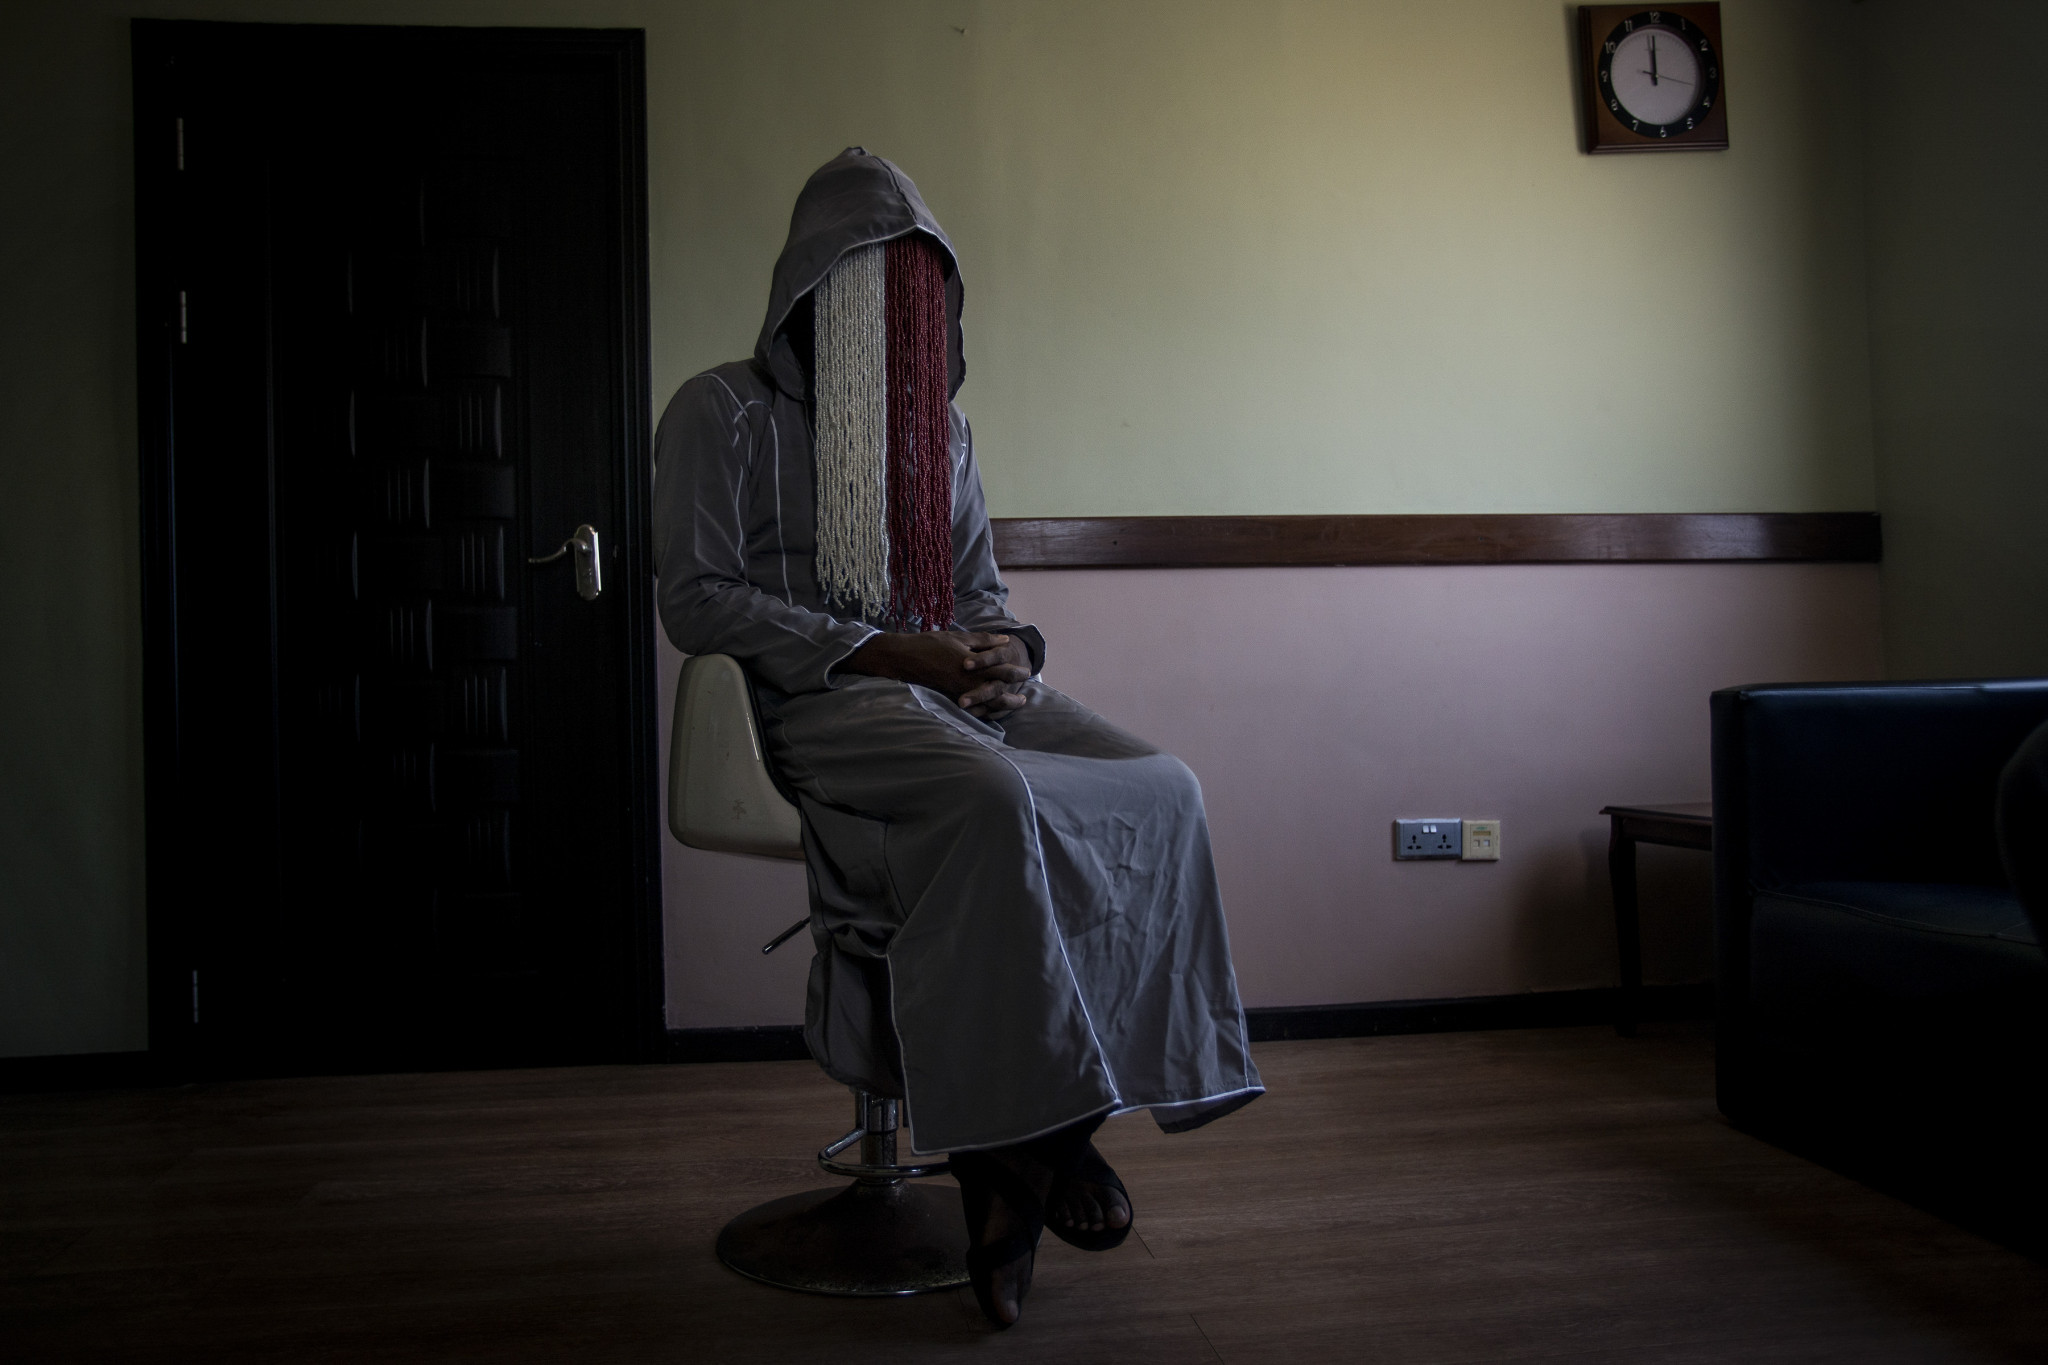 Ghanaian journalist Anas Aremeyaw Anas shot the footage which caught Kwesi Nyantakyi in the act ©Getty Images